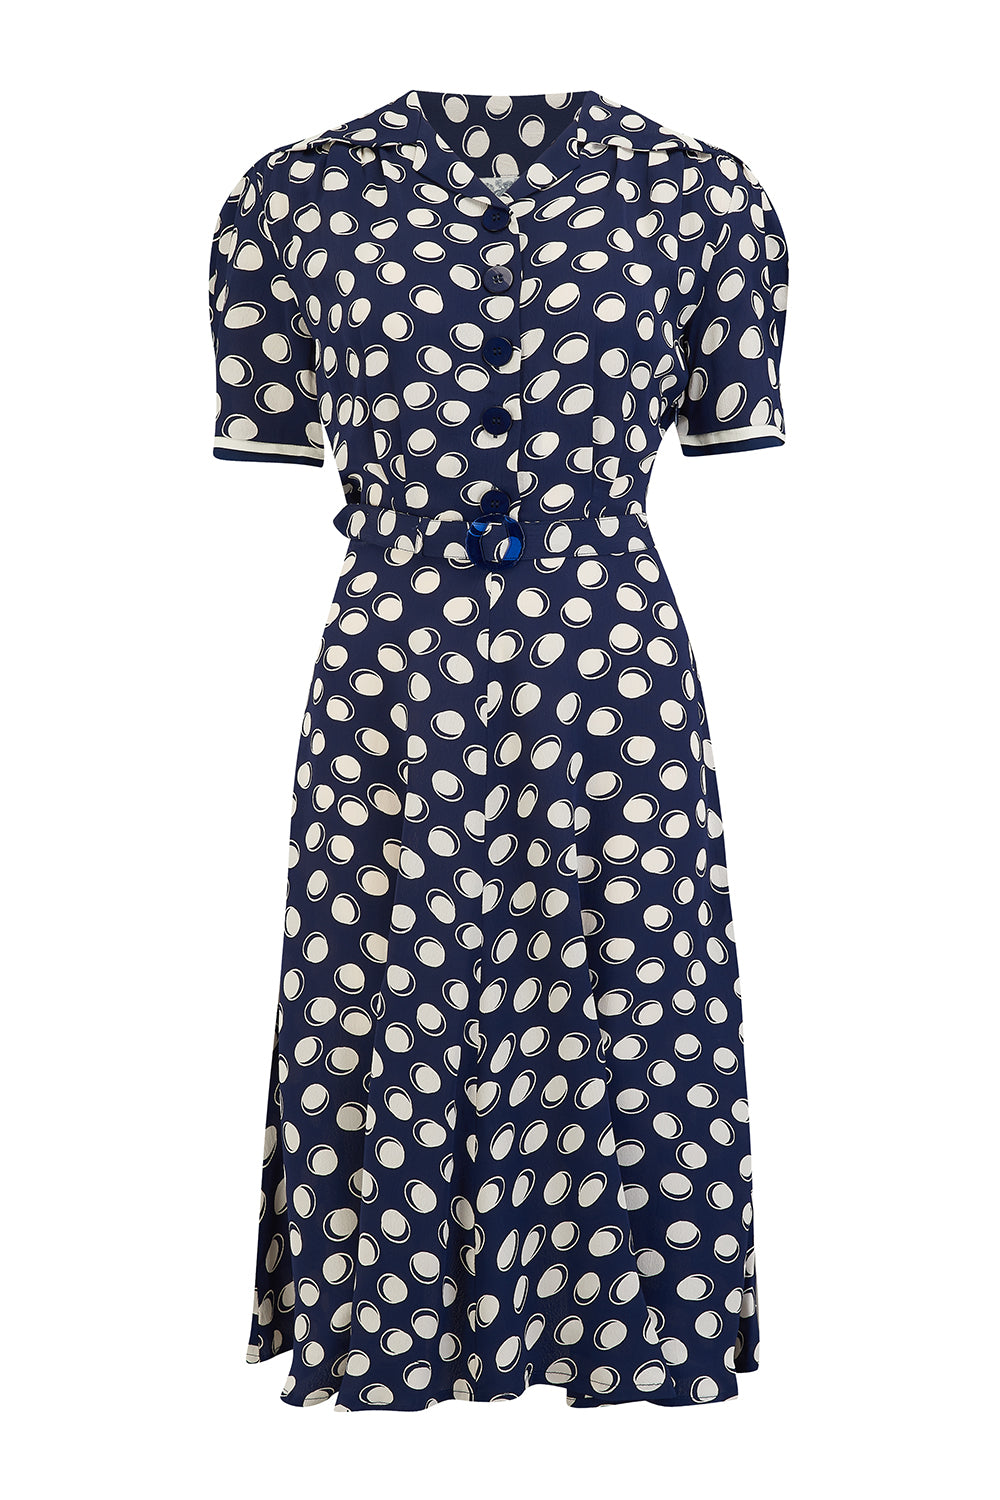 1940s Dress Styles Roma Dress in Navy Moonshine Polka Authentic  Classic 1940s Vintage Inspired Style £79.00 AT vintagedancer.com